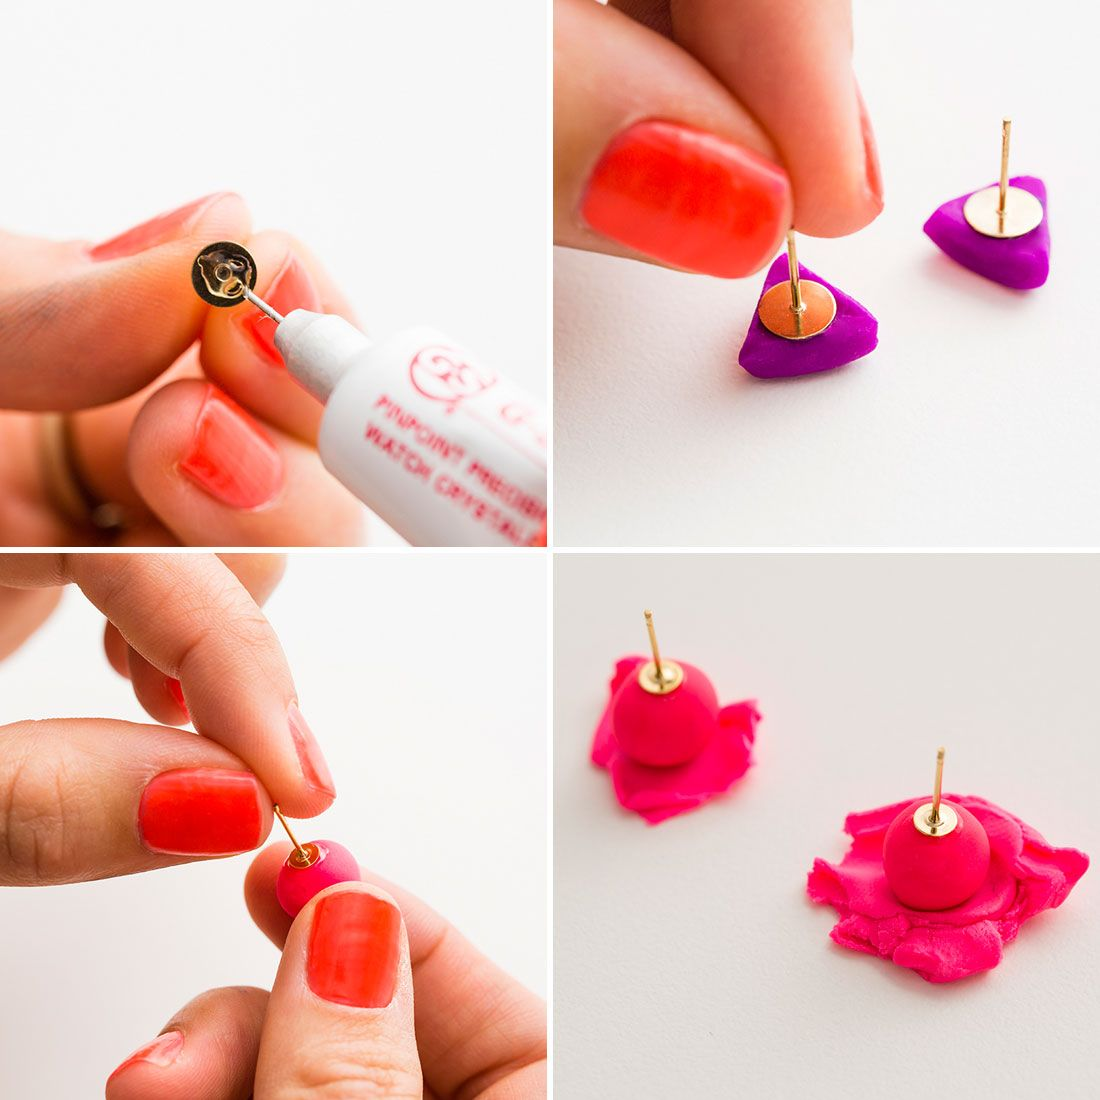 20 Minute Diy How To Make Stud Earrings Crafts Projects